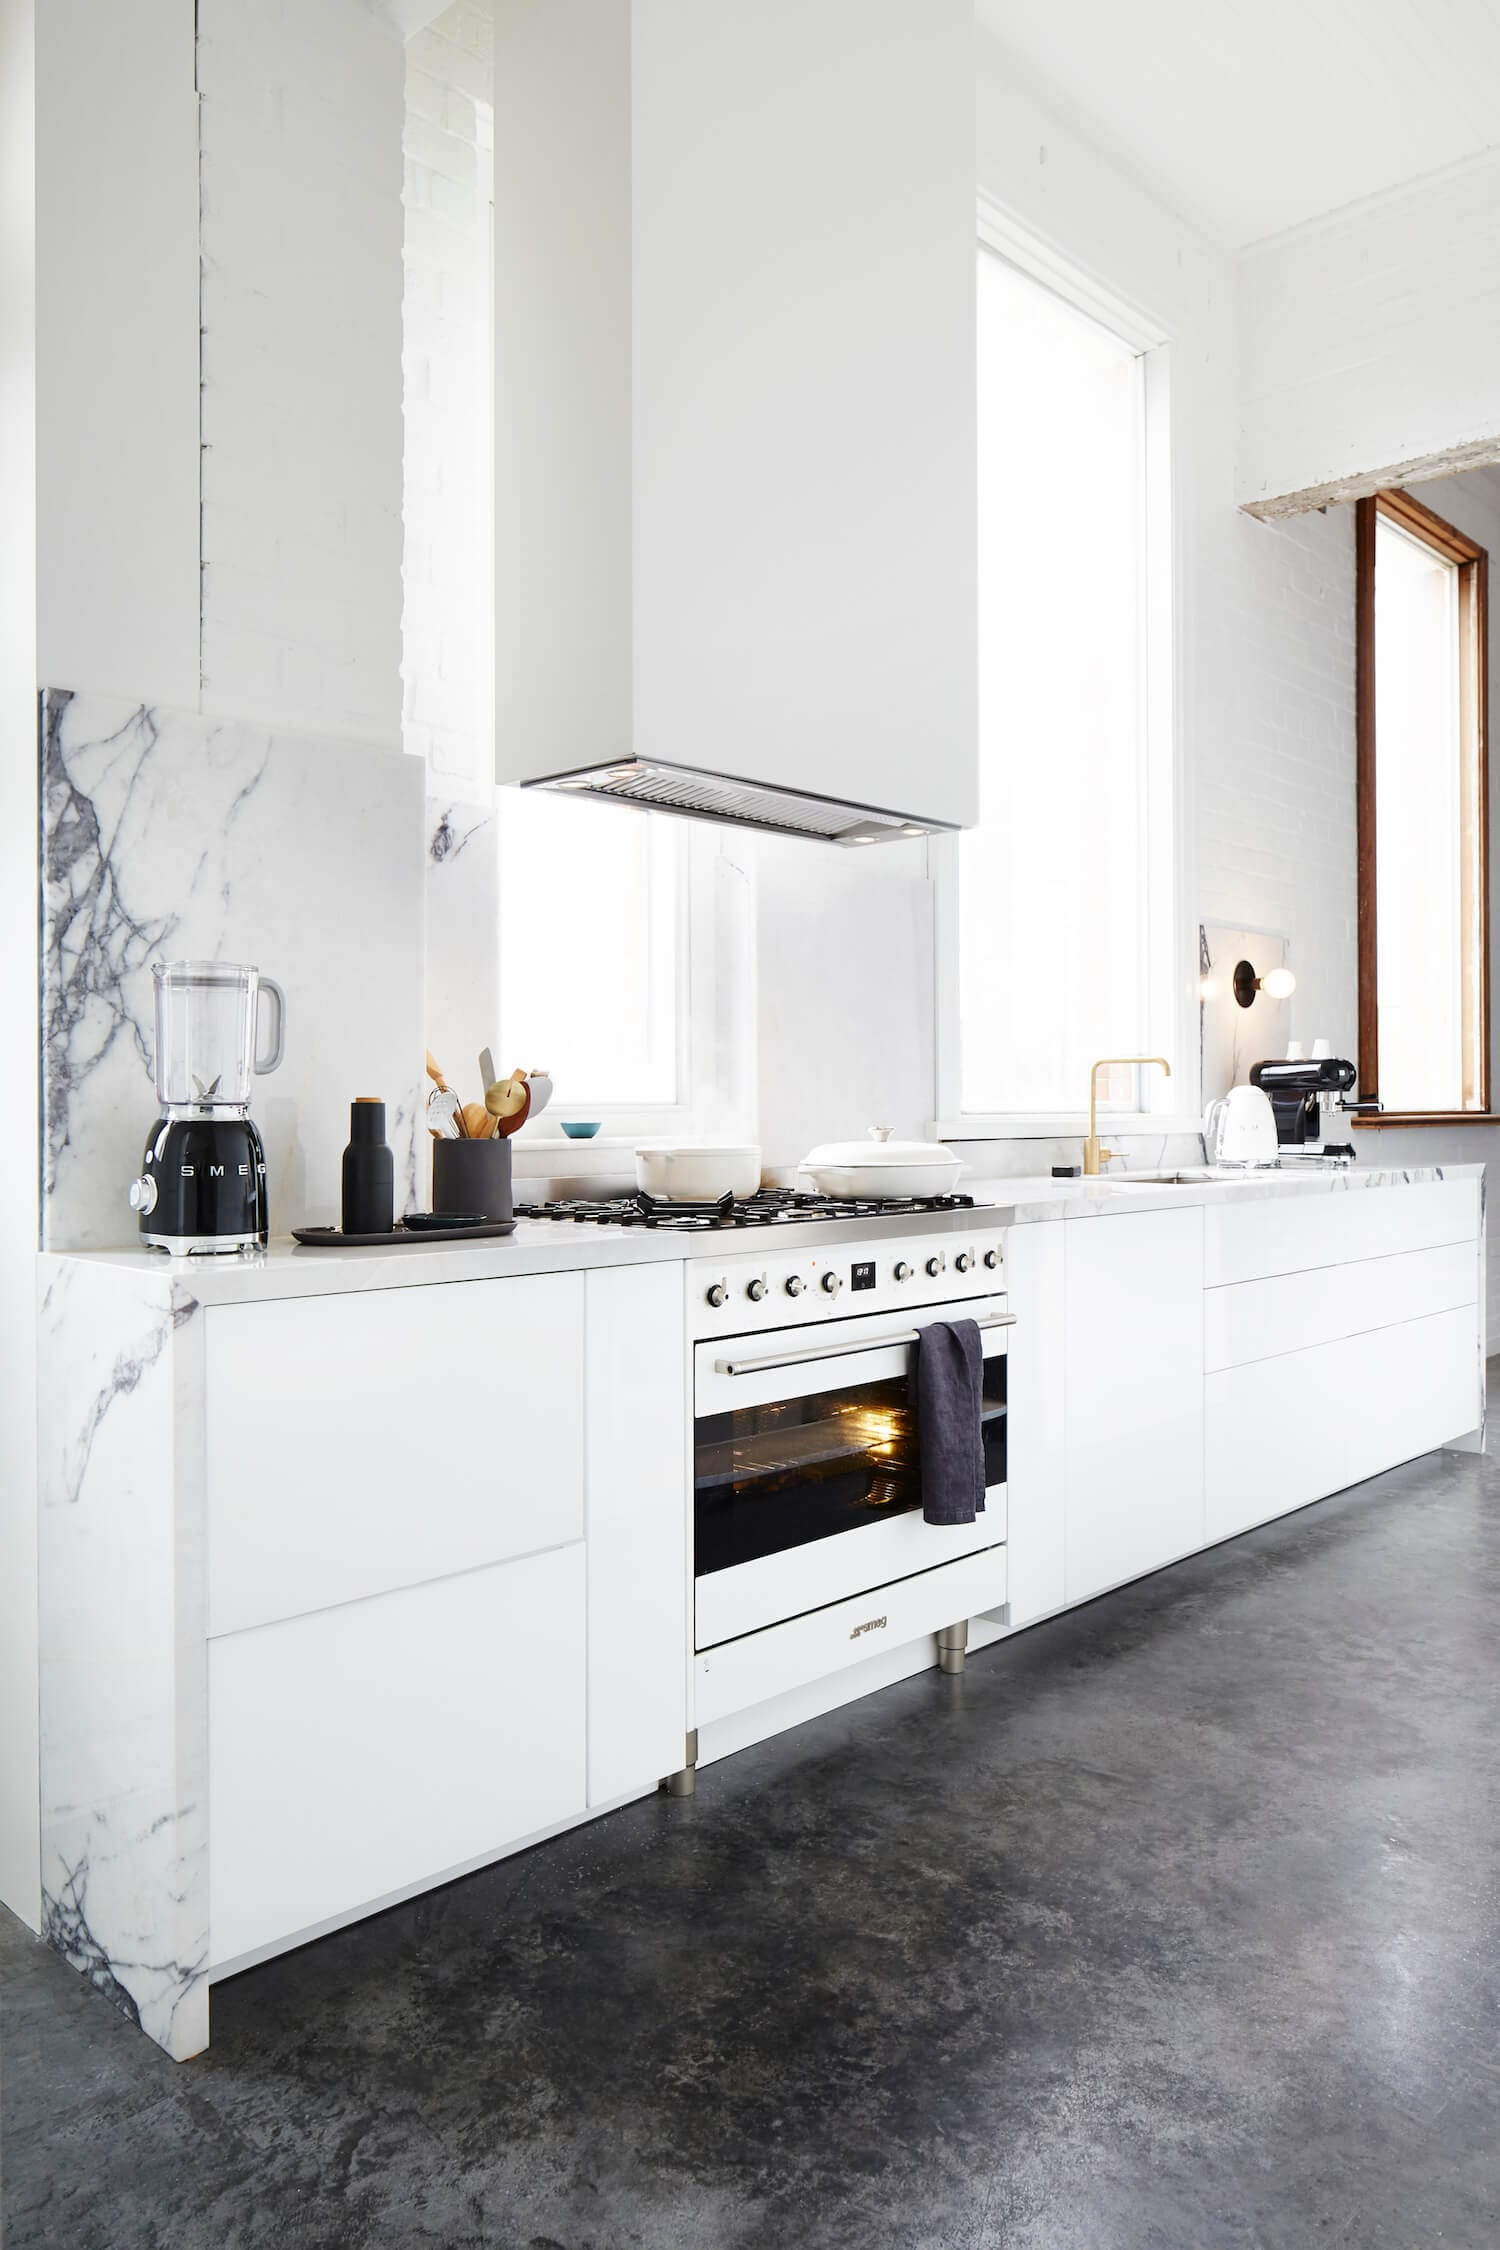 Smeg Freestanding Cooker in Armelle Habib's Studio Kitchen | Yellowtrace